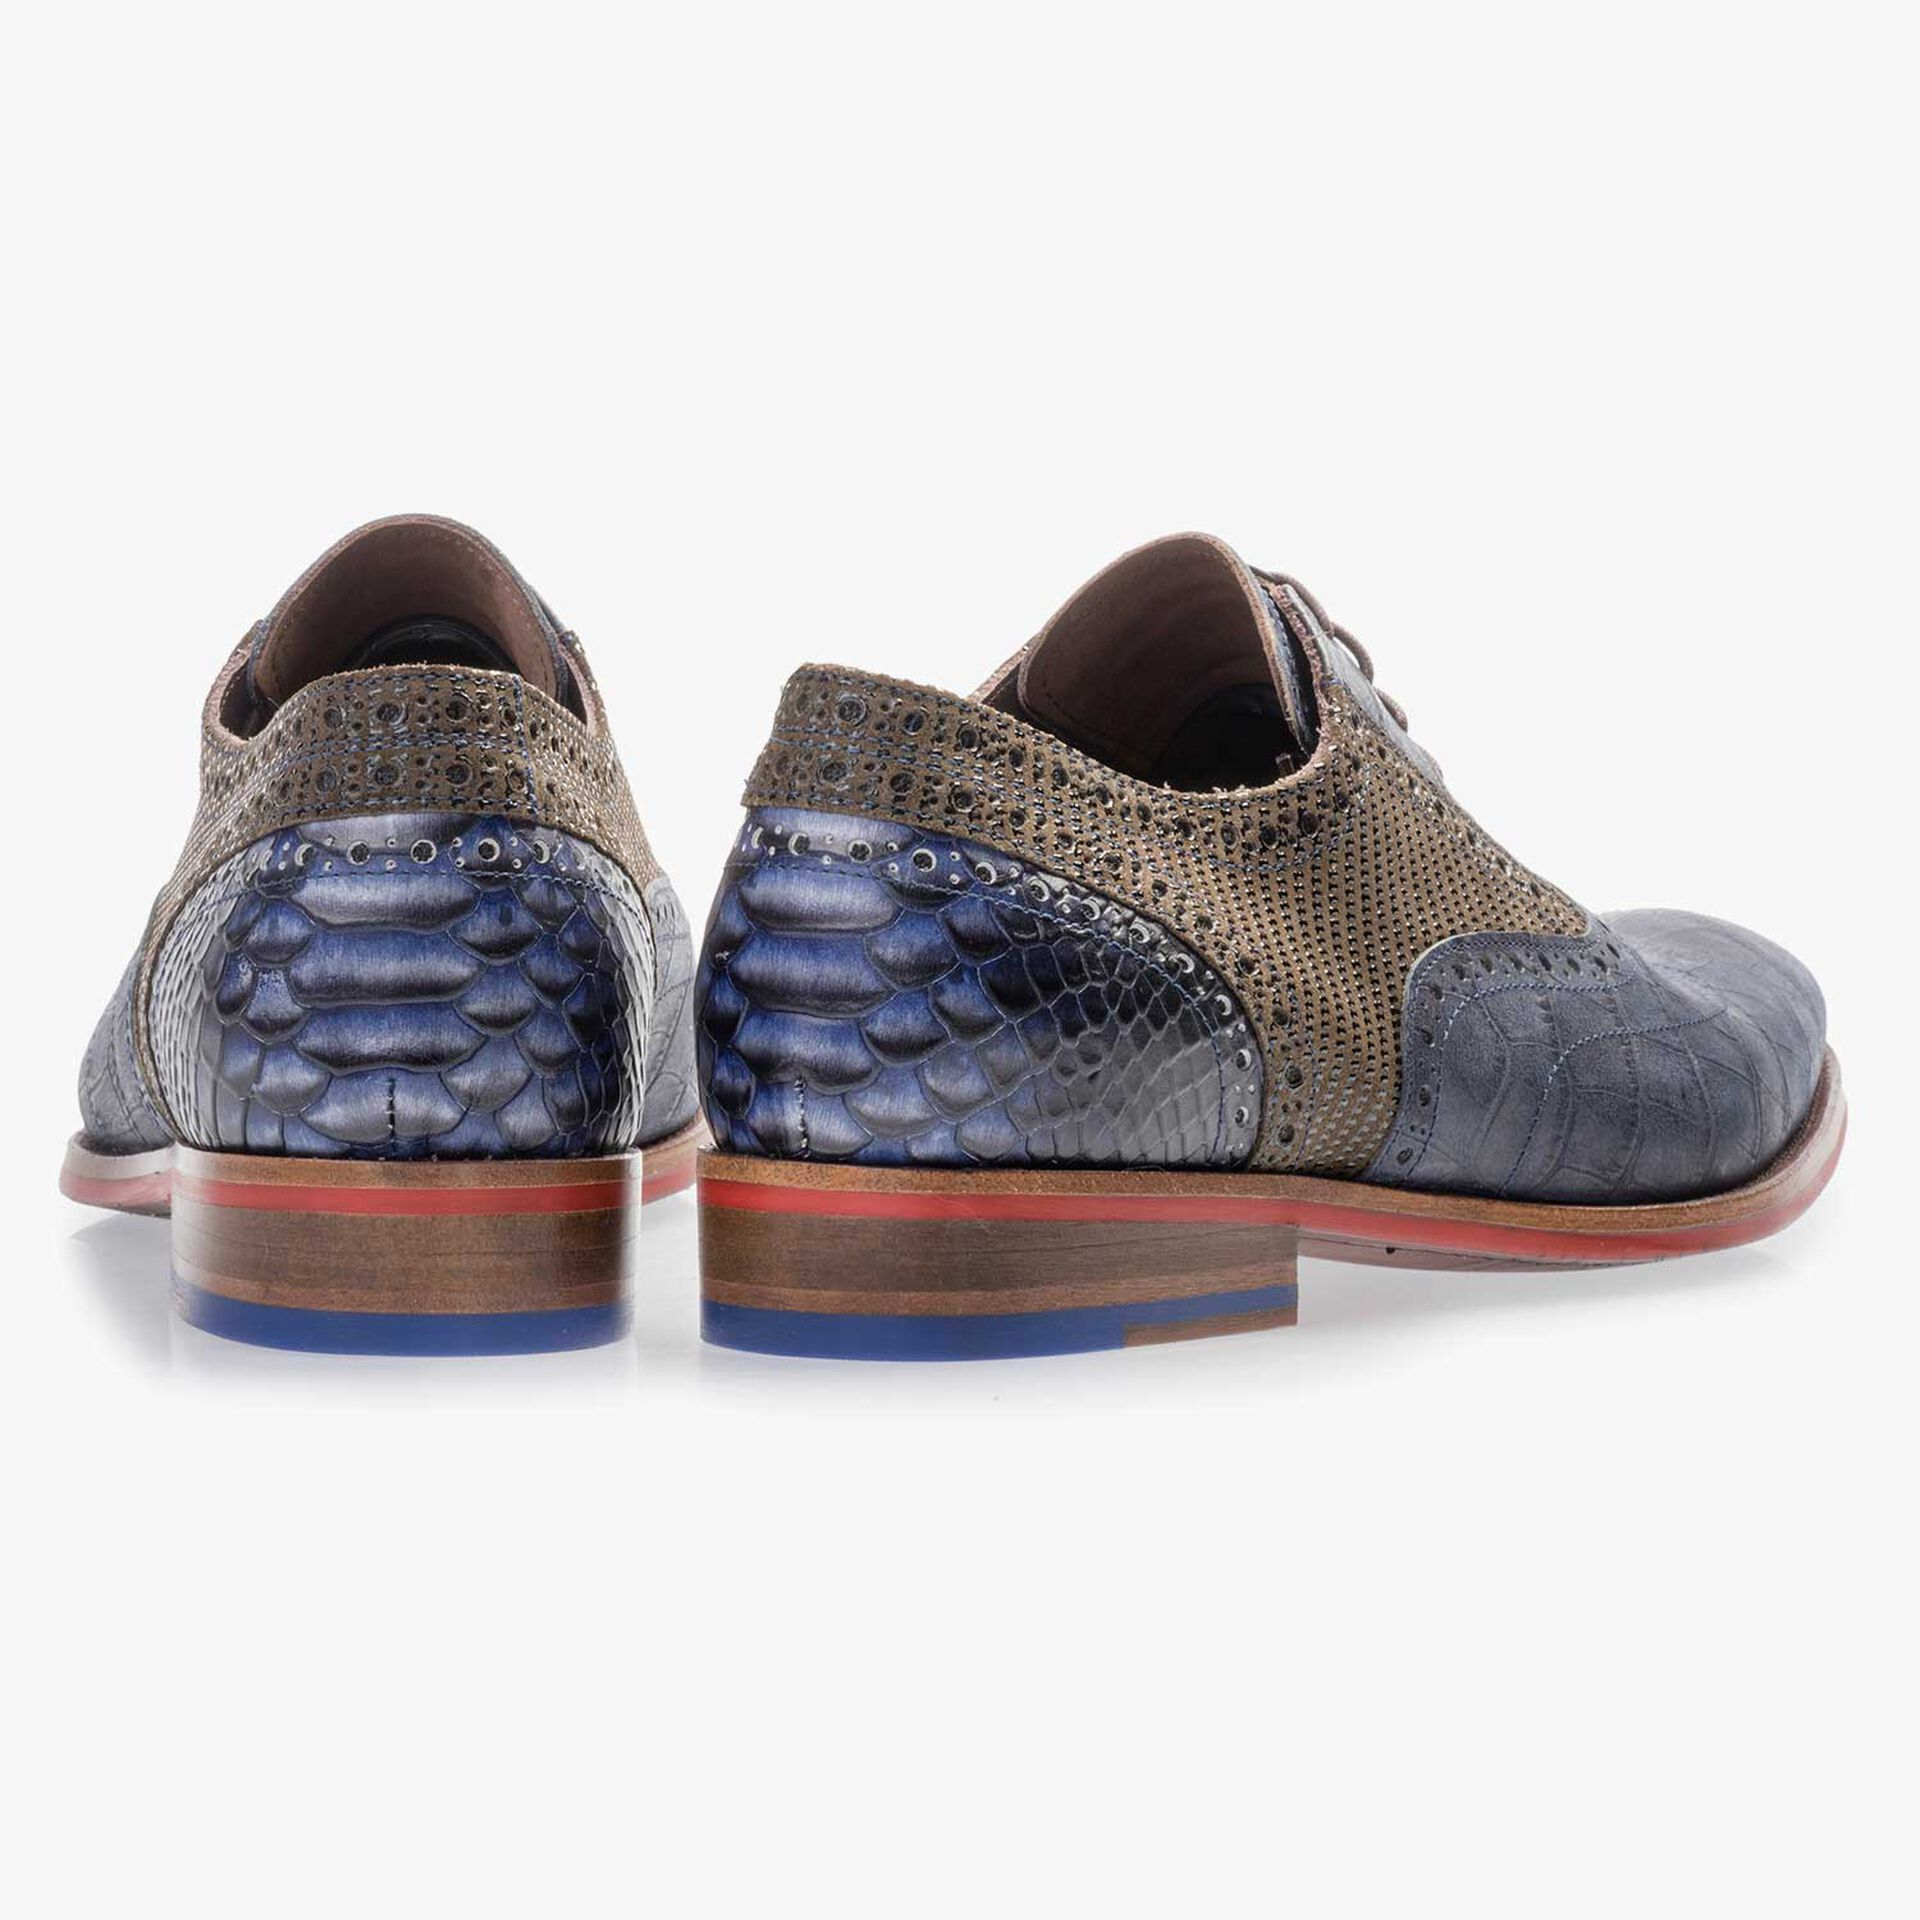 Dark blue calf's leather lace shoe with a croco print